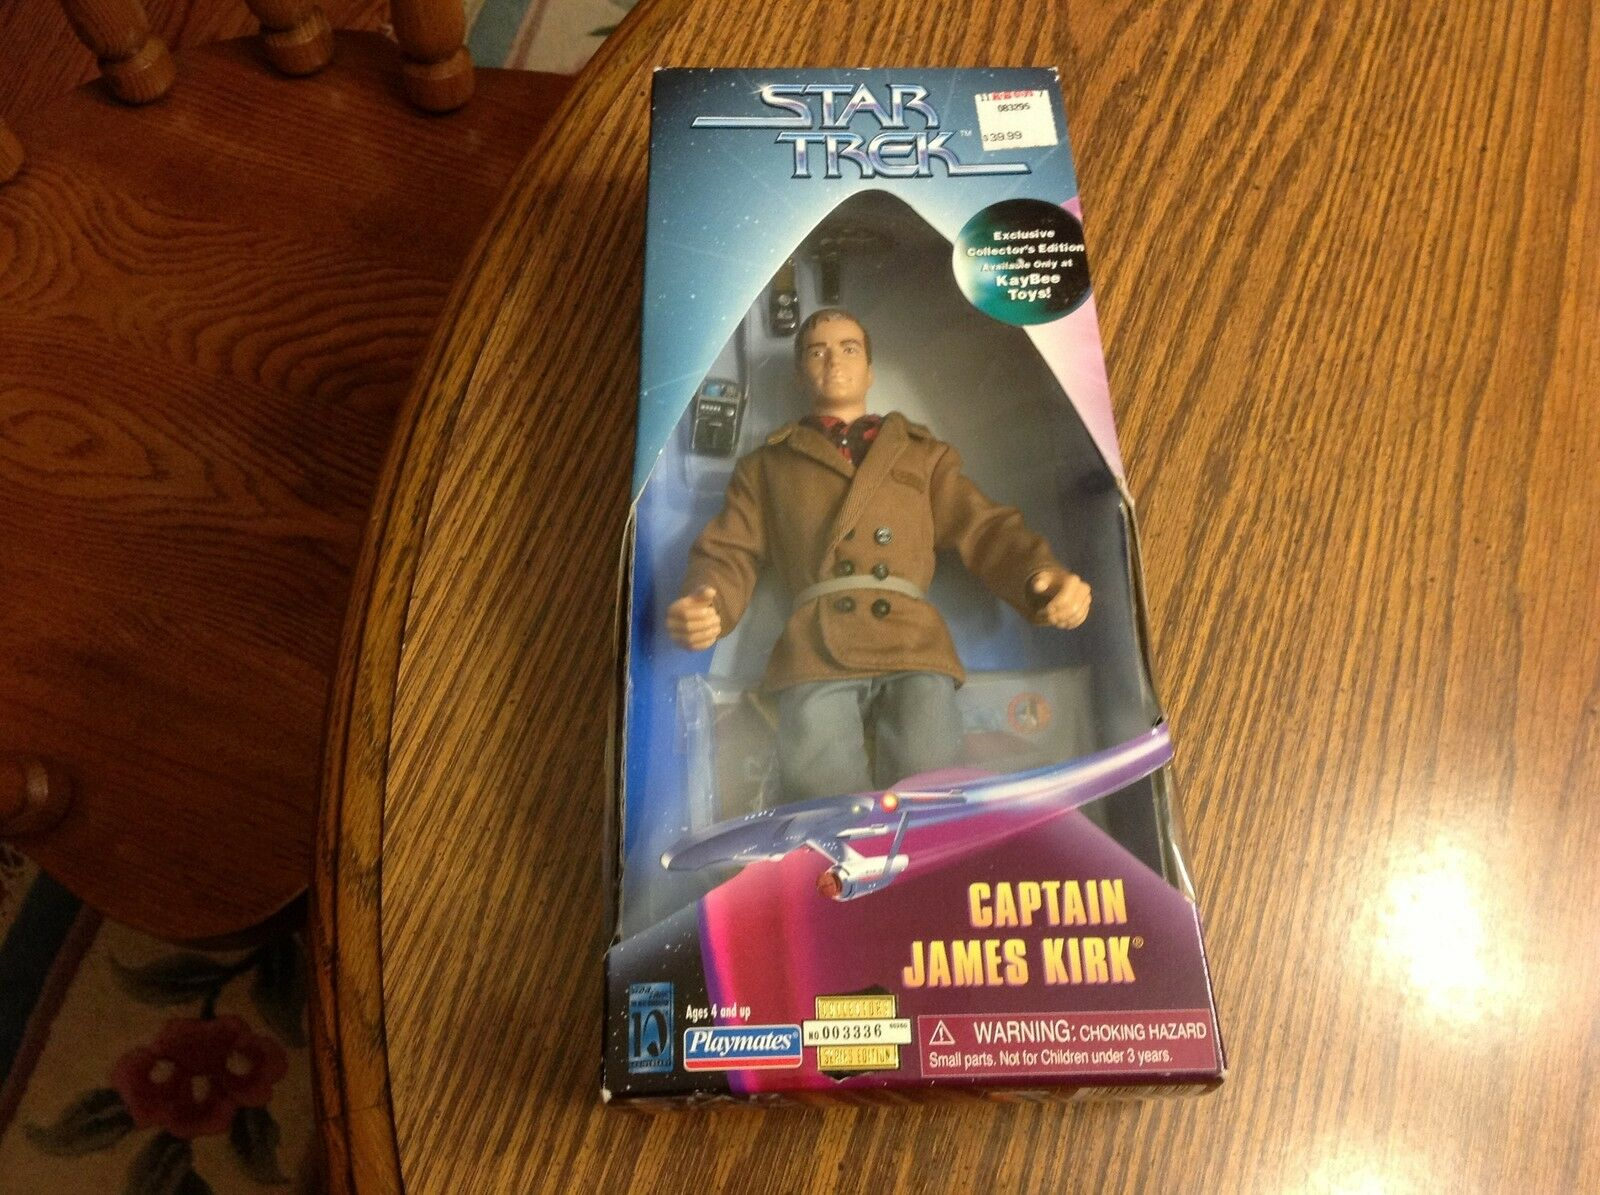 Star Trek RARE Captain Kirk  NIB Playmates 1997 Action Figure with Accessories